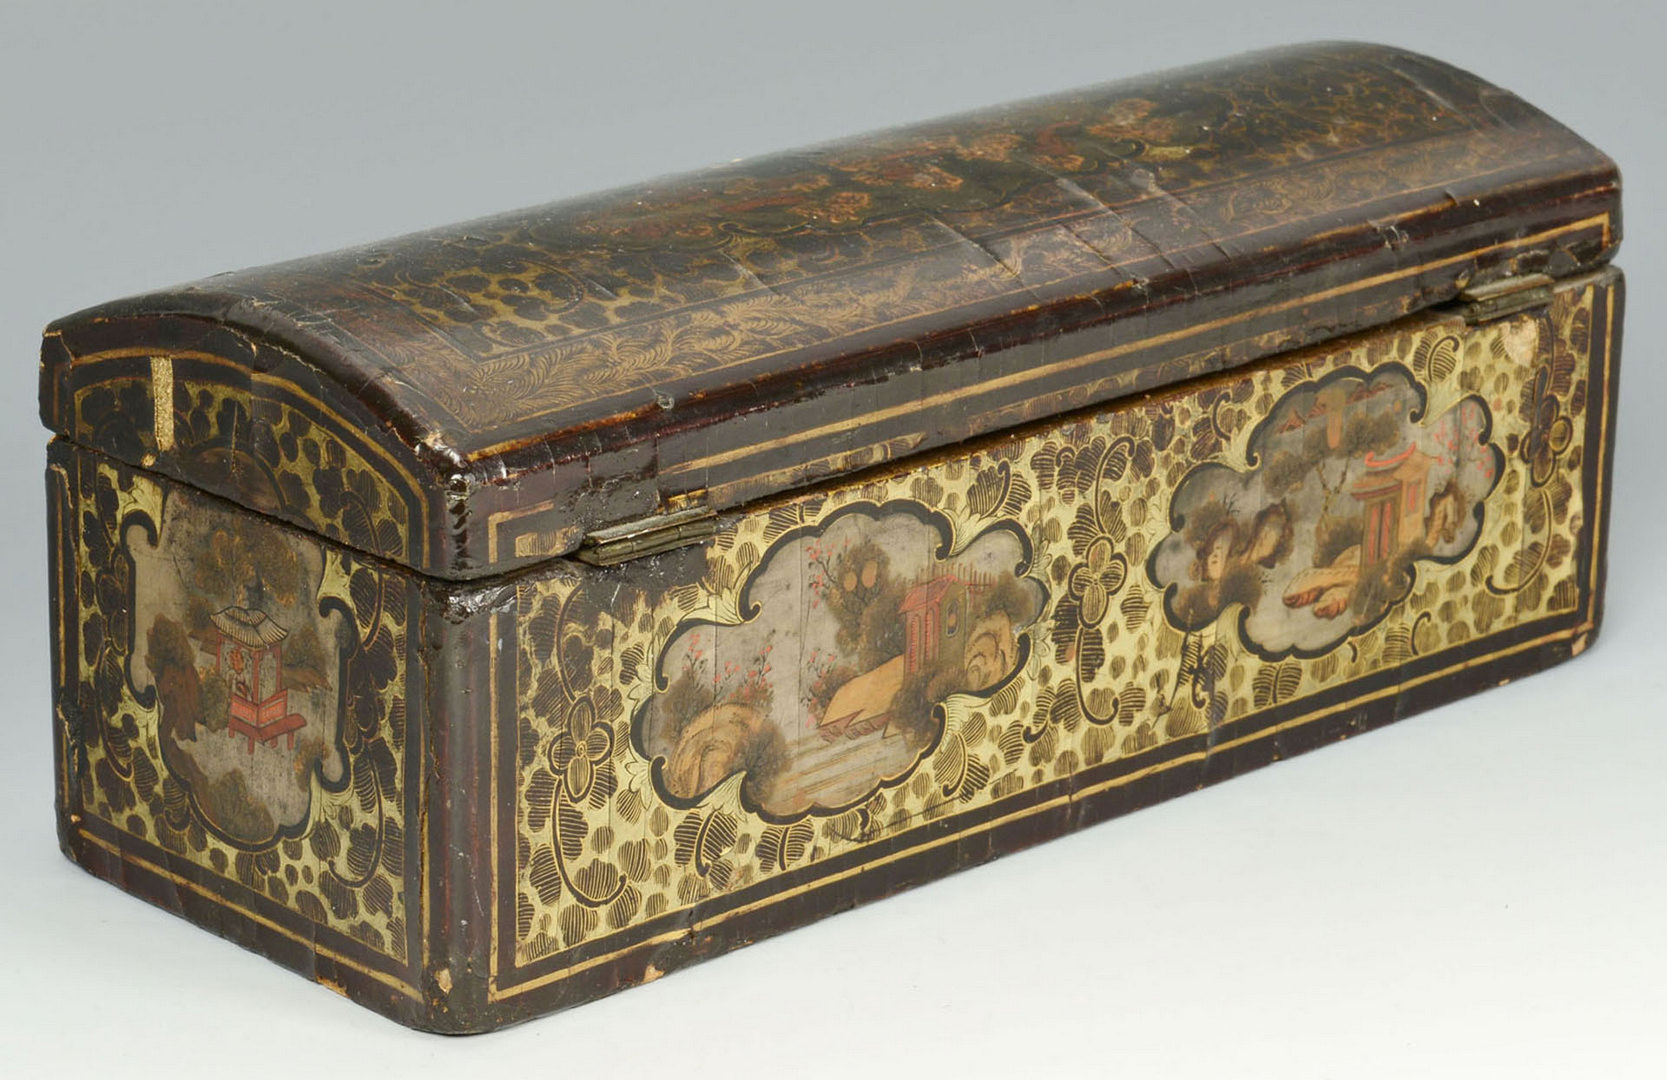 Lot 213: Chinese Export glove box, 19thc.